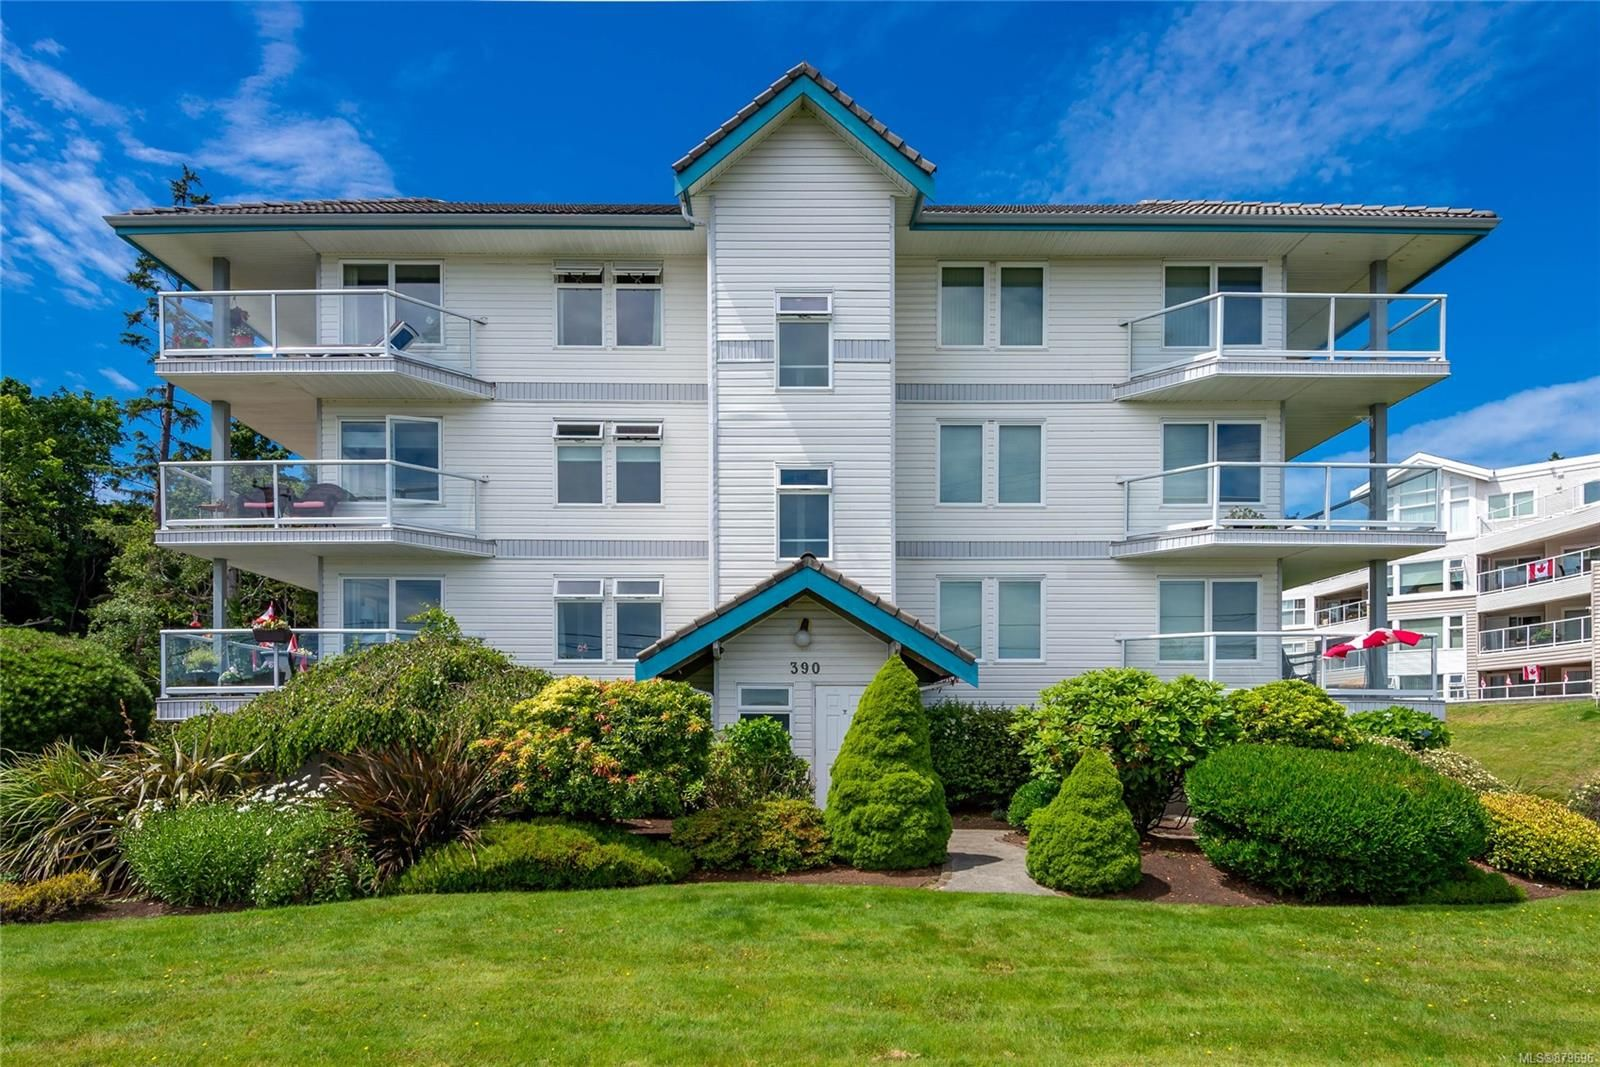 Photo 34: Photos: 219 390 S Island Hwy in : CR Campbell River West Condo for sale (Campbell River)  : MLS®# 879696